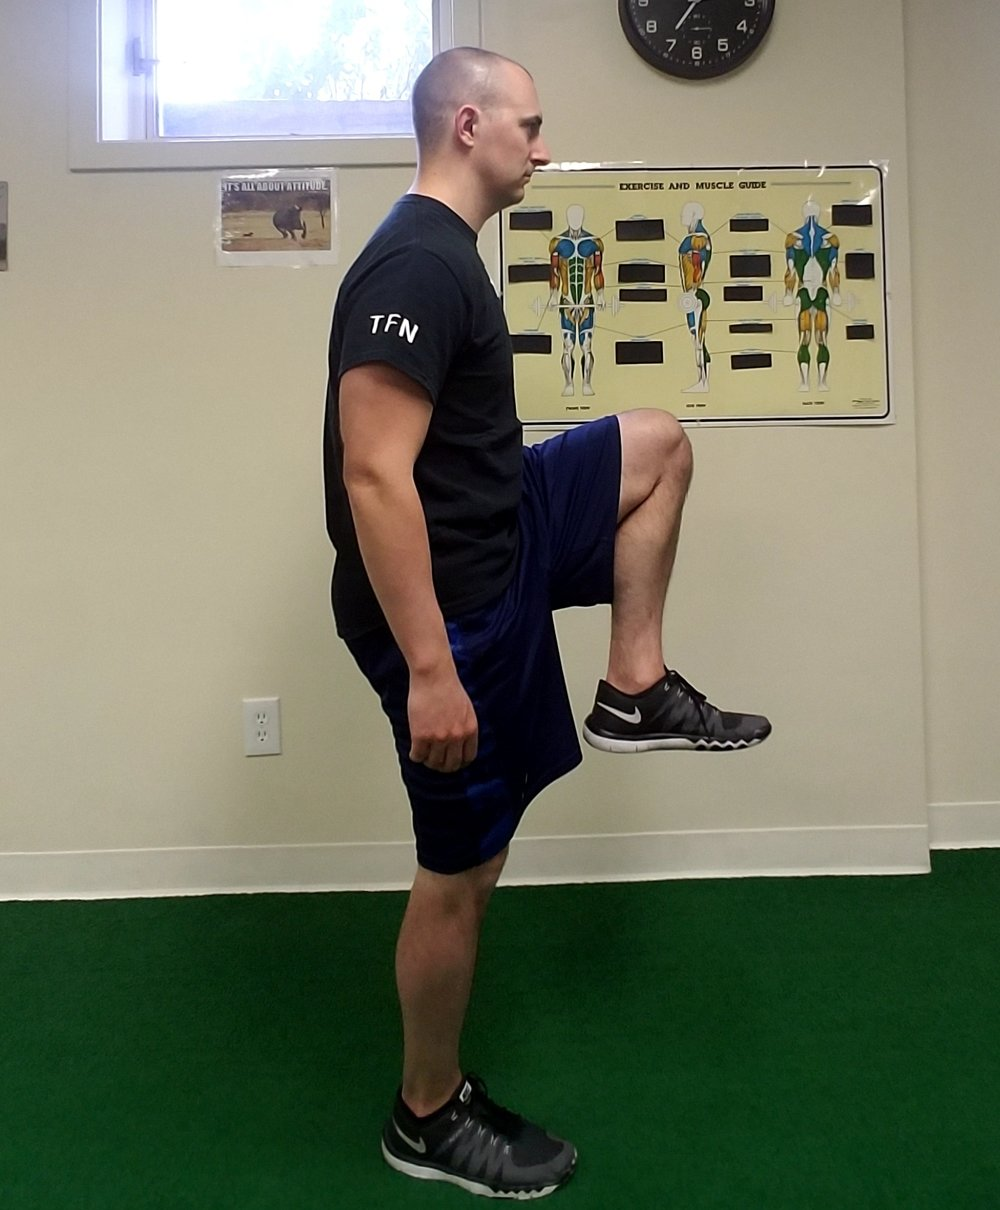 Figure 1.2 In this image, the spine is neutral as set by the core position. When the core musculature is engaged, hip mobility and stability can be fully utilized.